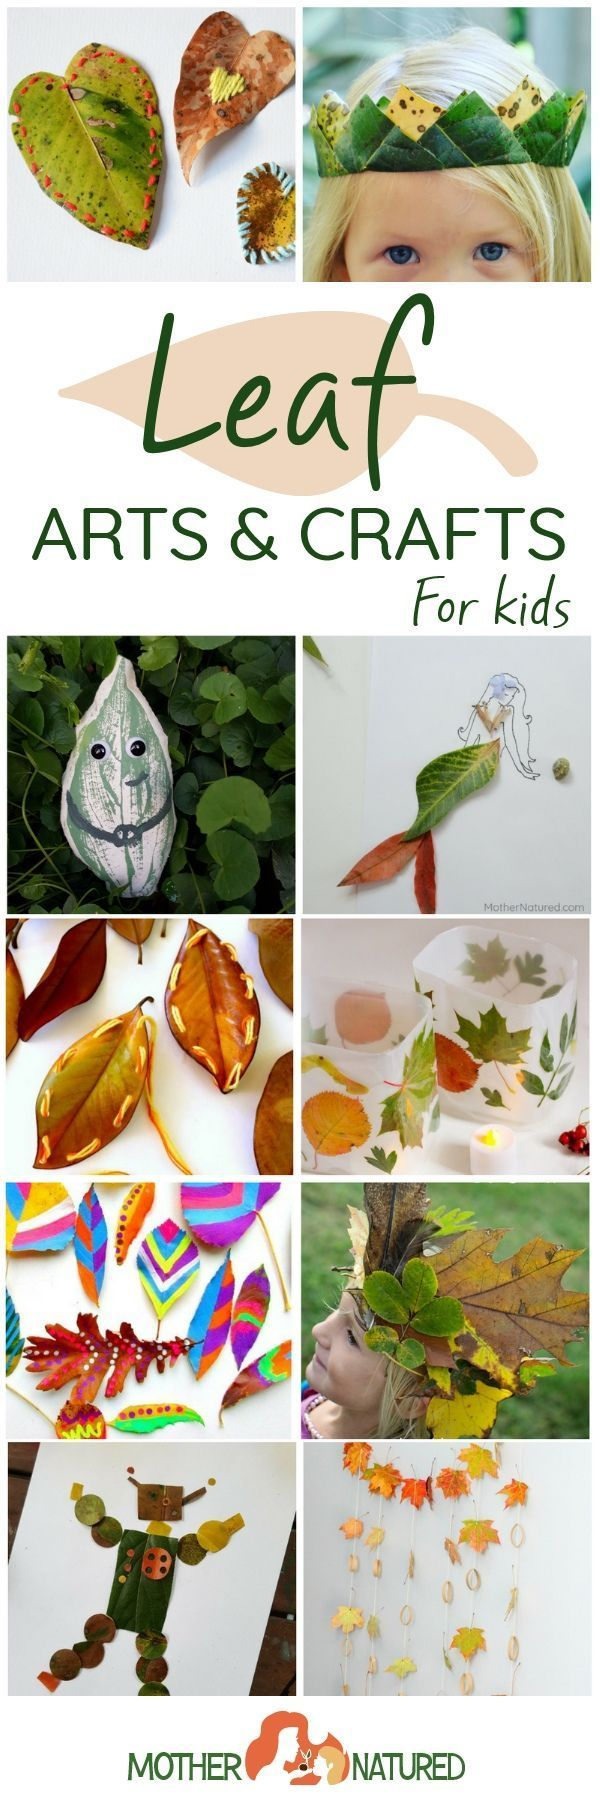 Leaf Arts and Crafts to Celebrate Days Filled with Falling Leaves #leafcrafts